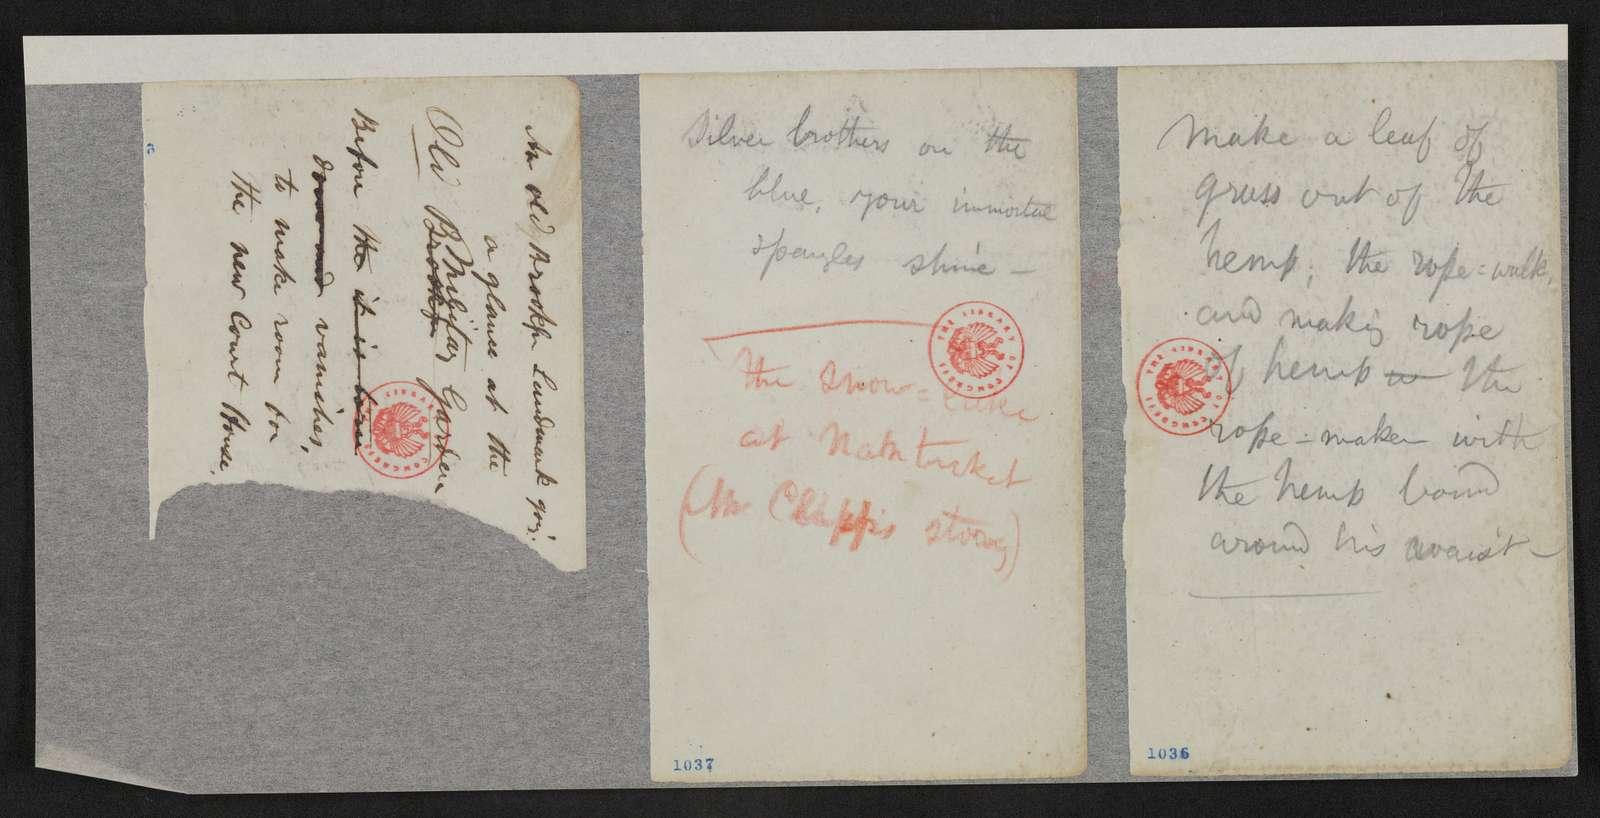 Thomas Biggs Harned Collection of the Papers of Walt Whitman: Notebooks, 1847-1885?; 1862?; New York City notebook